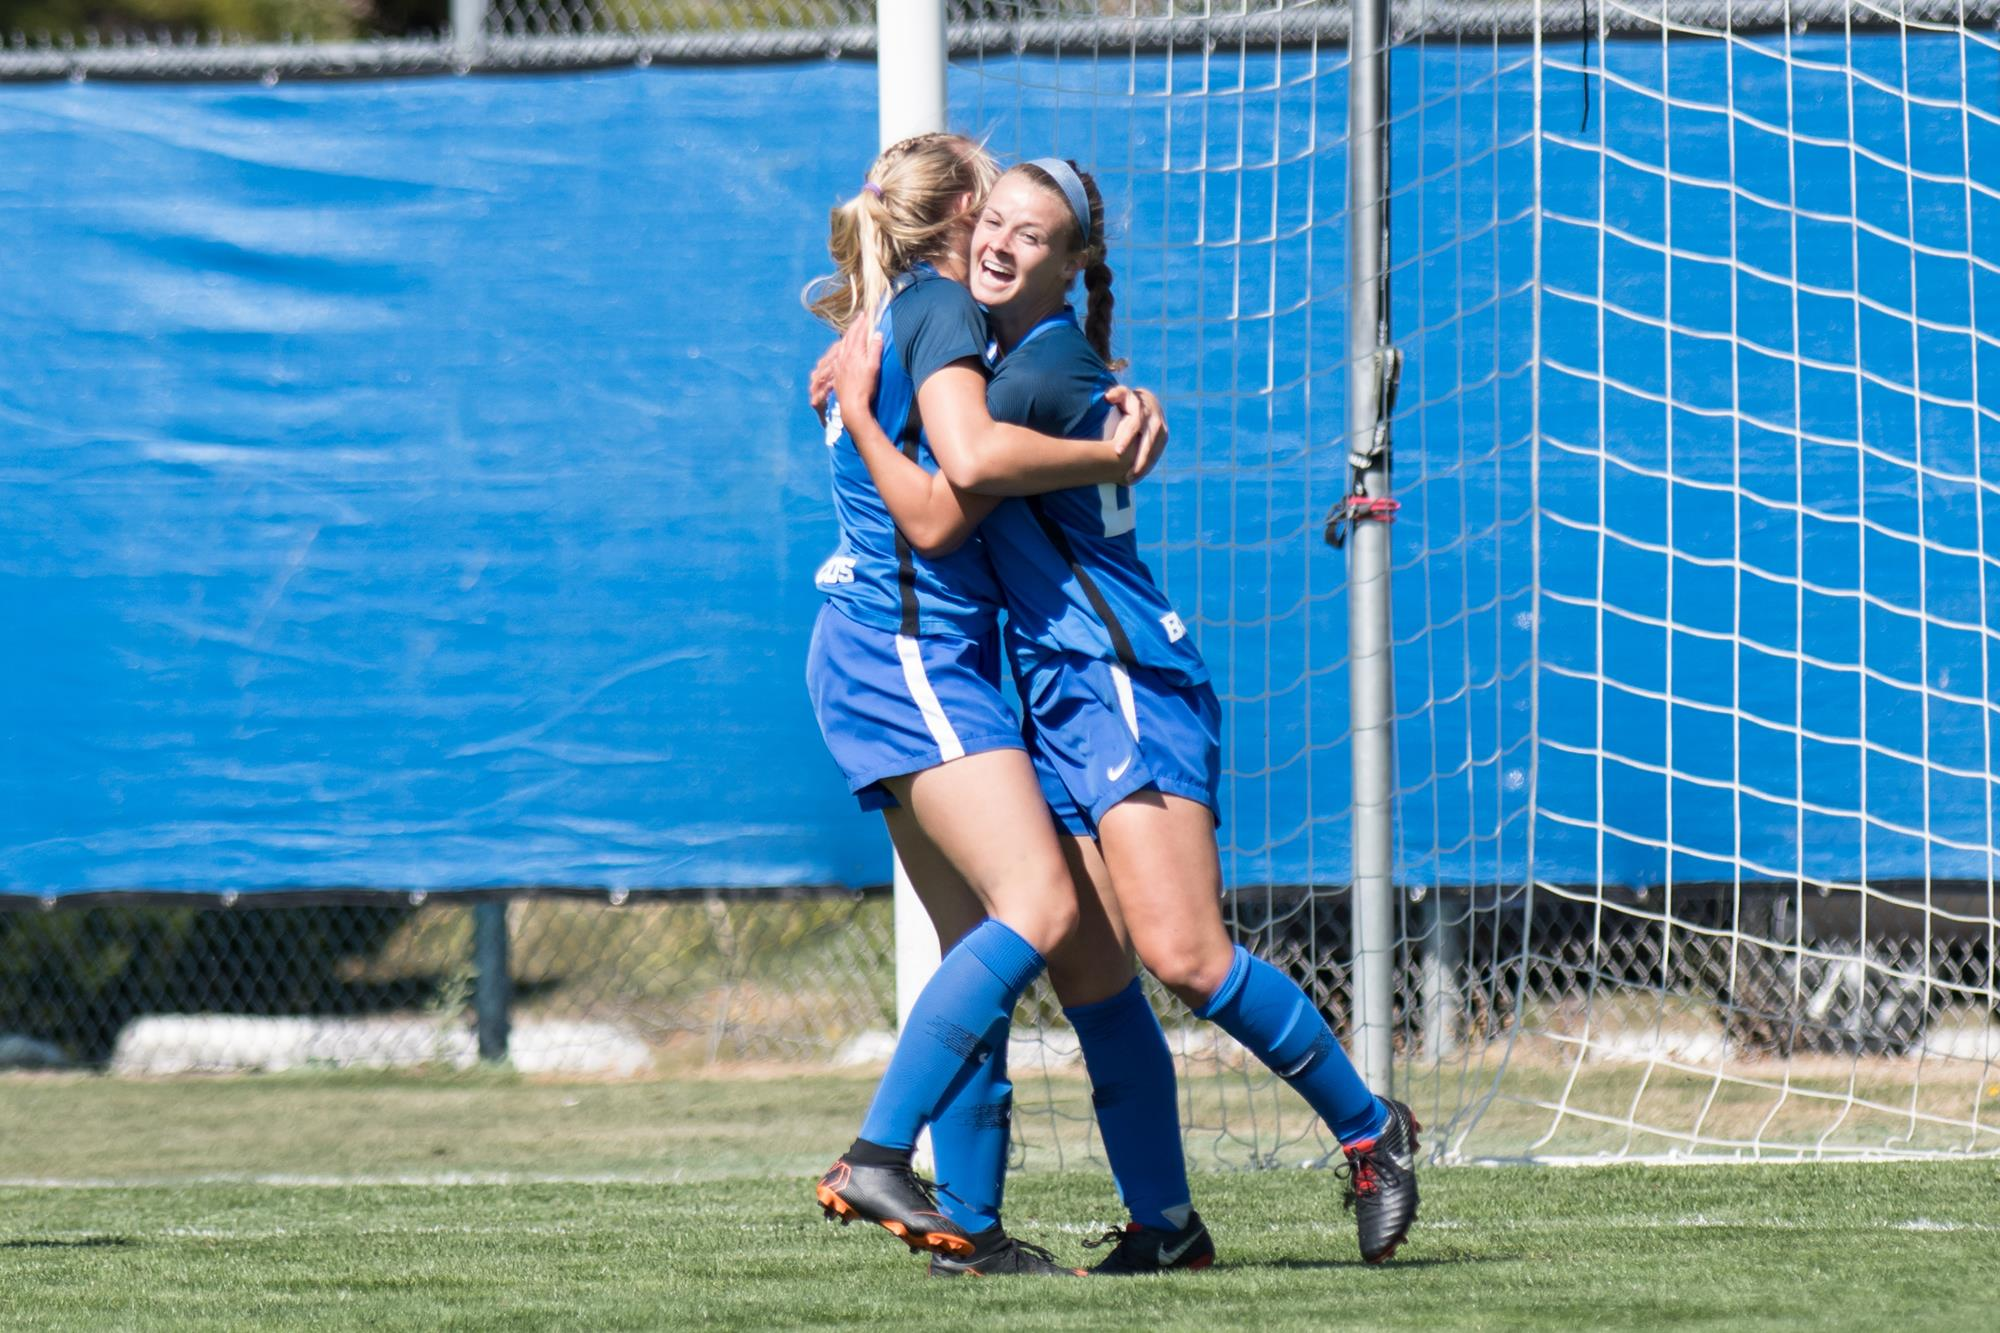 a1c331d8c80 Three Different Broncos Score in 3-0 Win - Boise State University ...